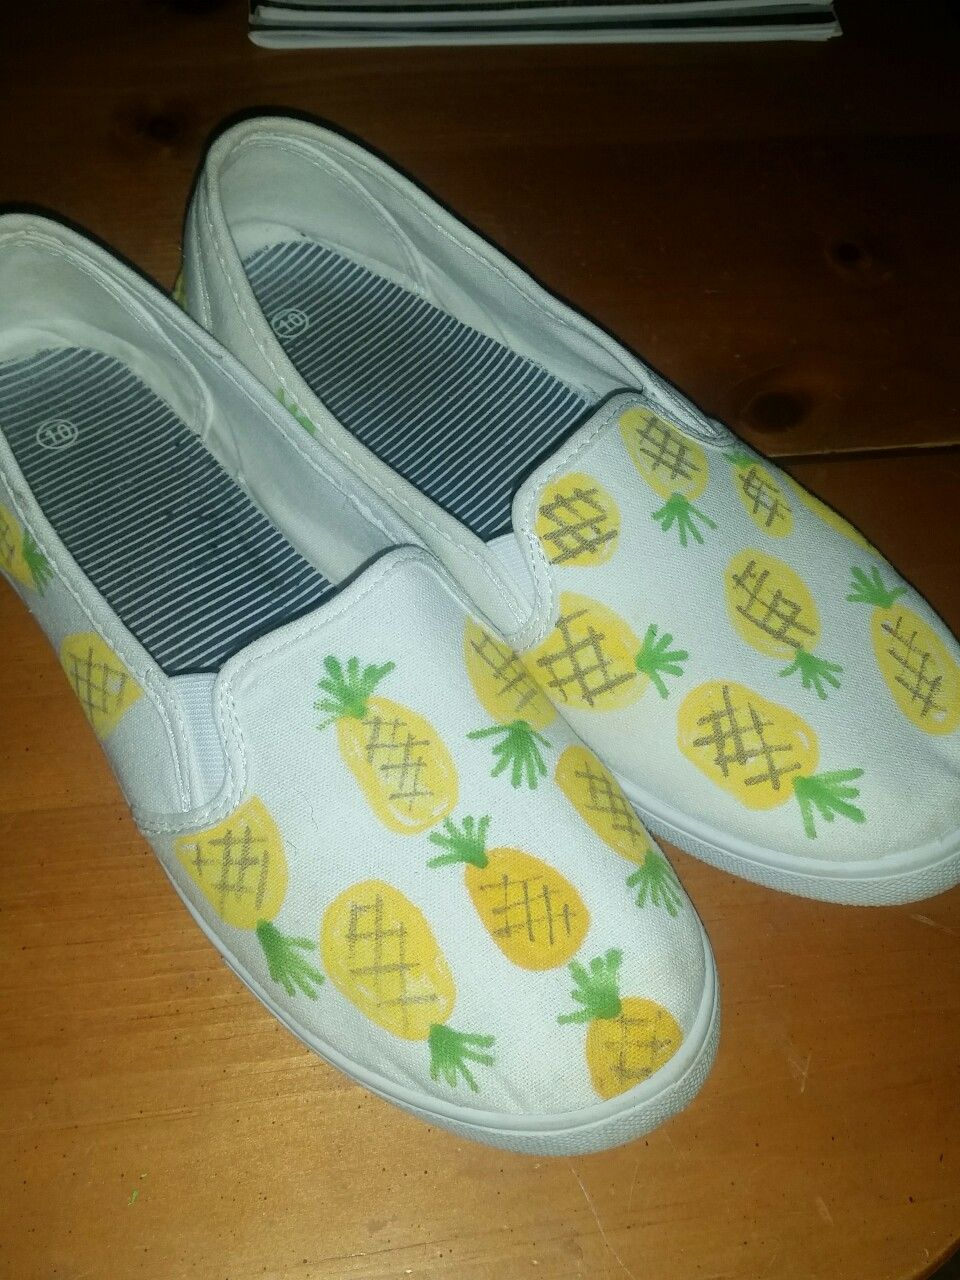 DIY pineapple shoes made with white canvas shoes from Walmart and sharpie  paint pens